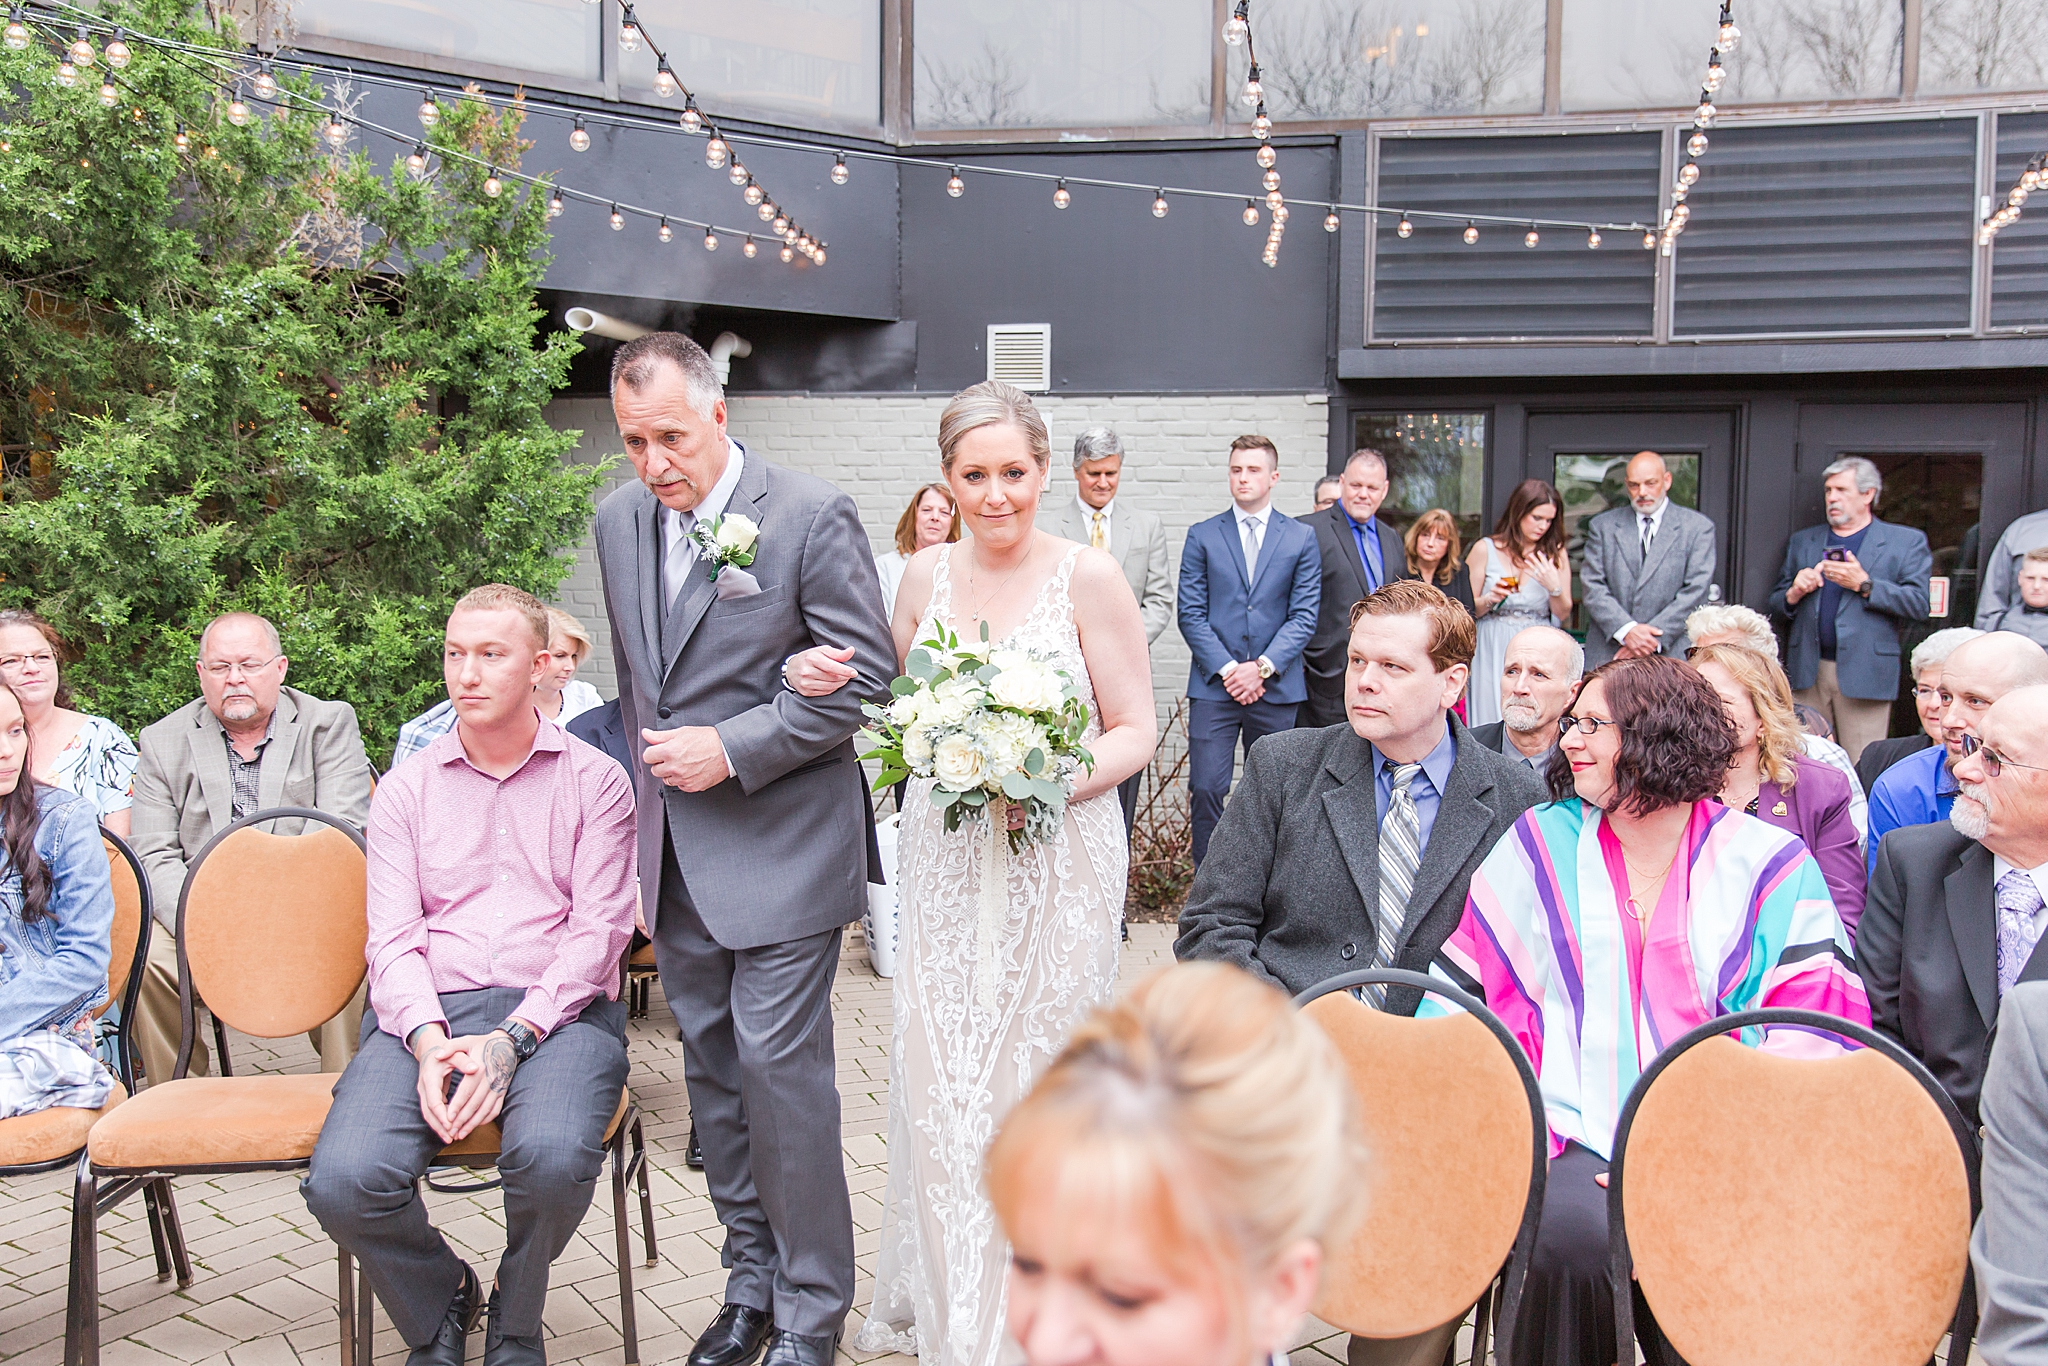 modern-romantic-wedding-photography-at-webers-in-ann-arbor-michigan-by-courtney-carolyn-photography_0057.jpg